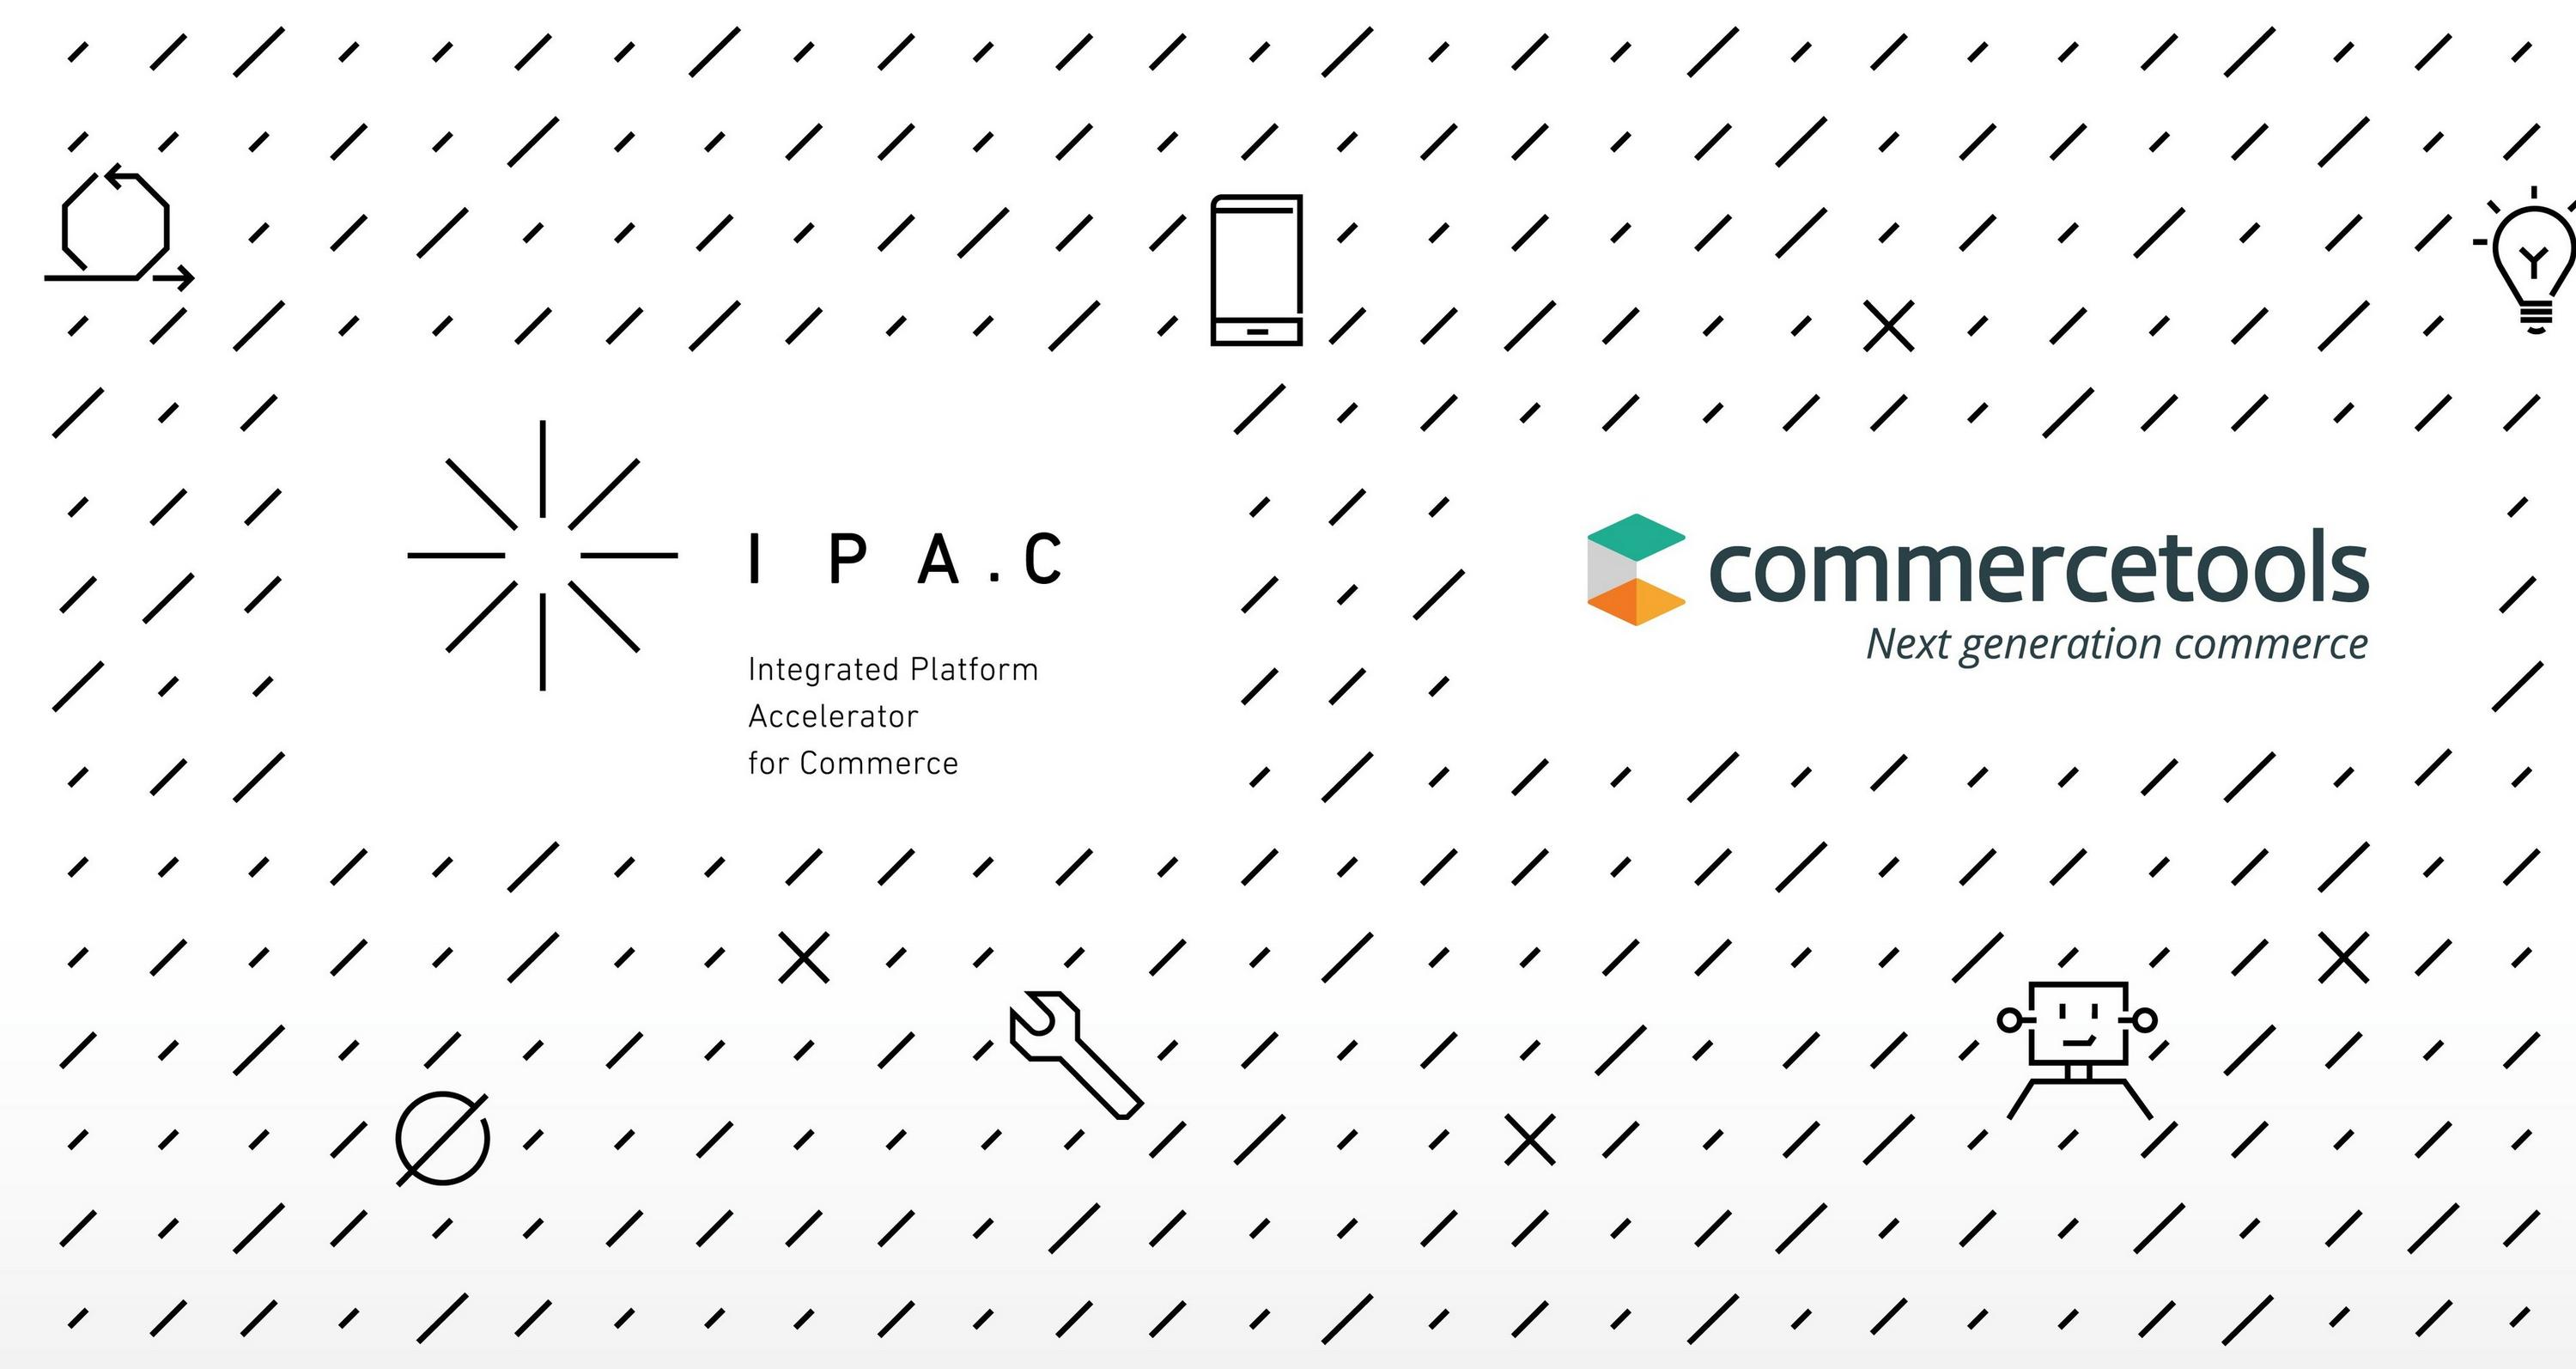 IPA.C on Integration Marketplace